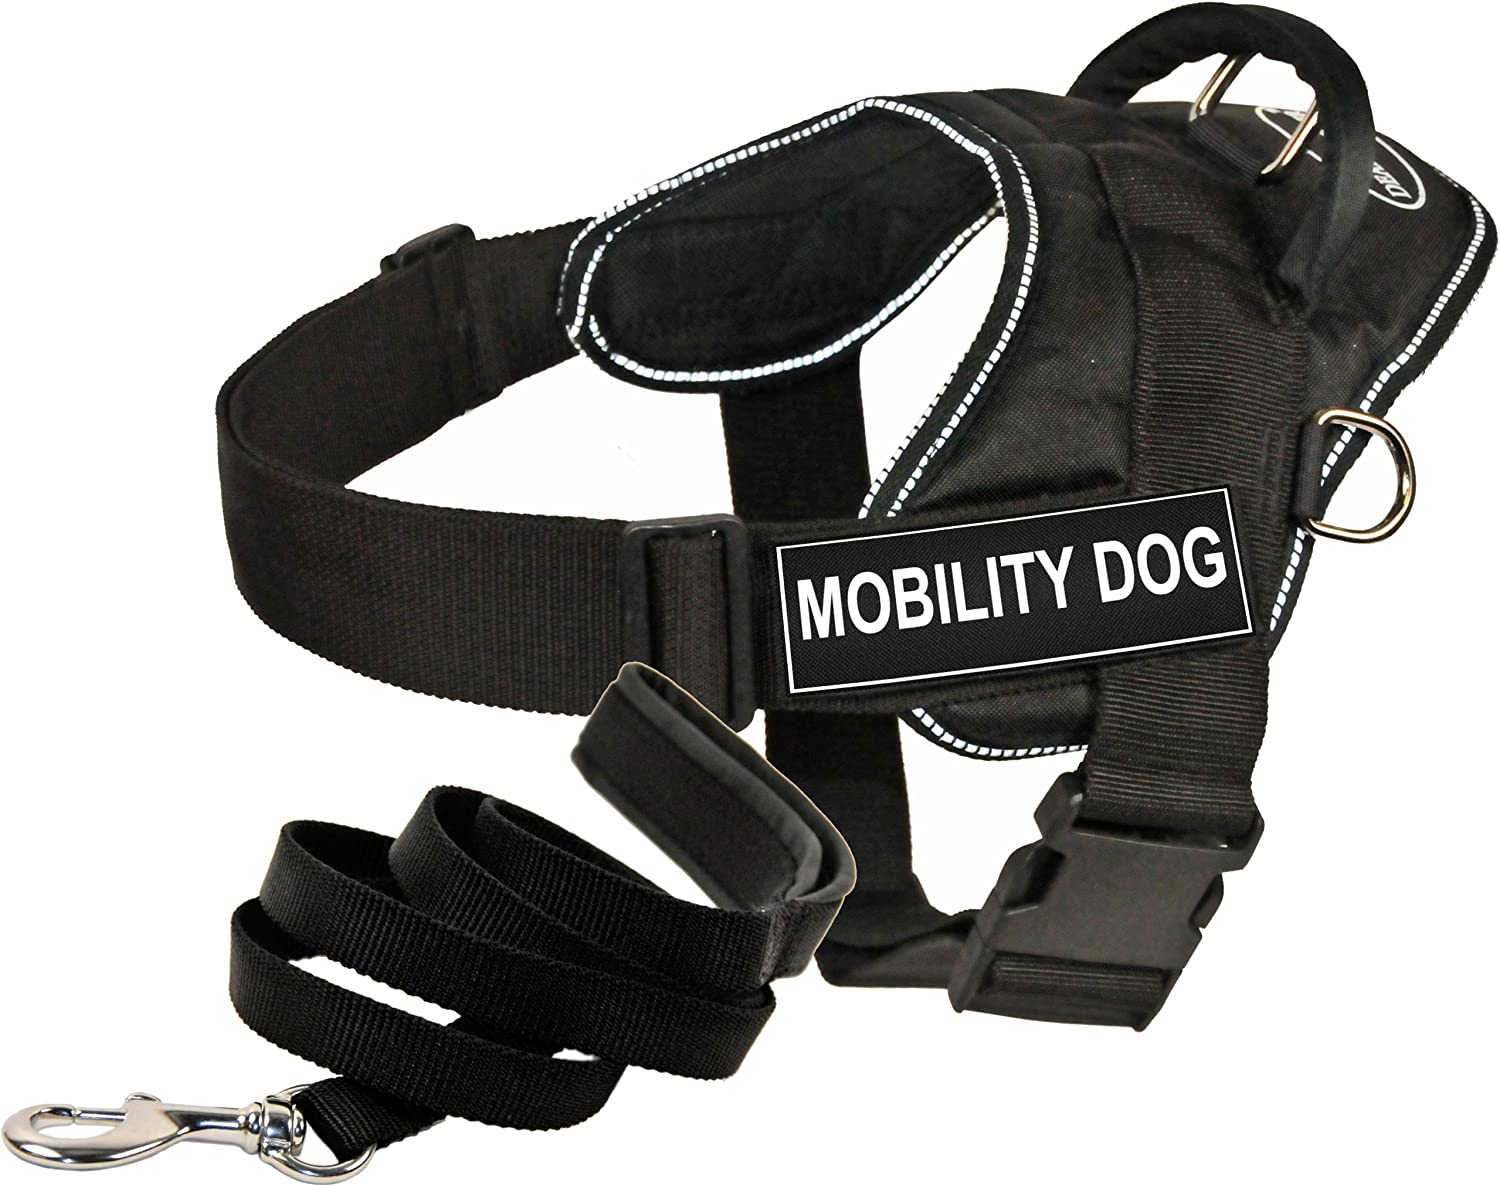 Dean and Tyler Bundle  One DT Fun Works  Harness, Mobility Dog, Reflective, Medium + One Padded Puppy  Leash, 6 FT Stainless Steel Snap  Black